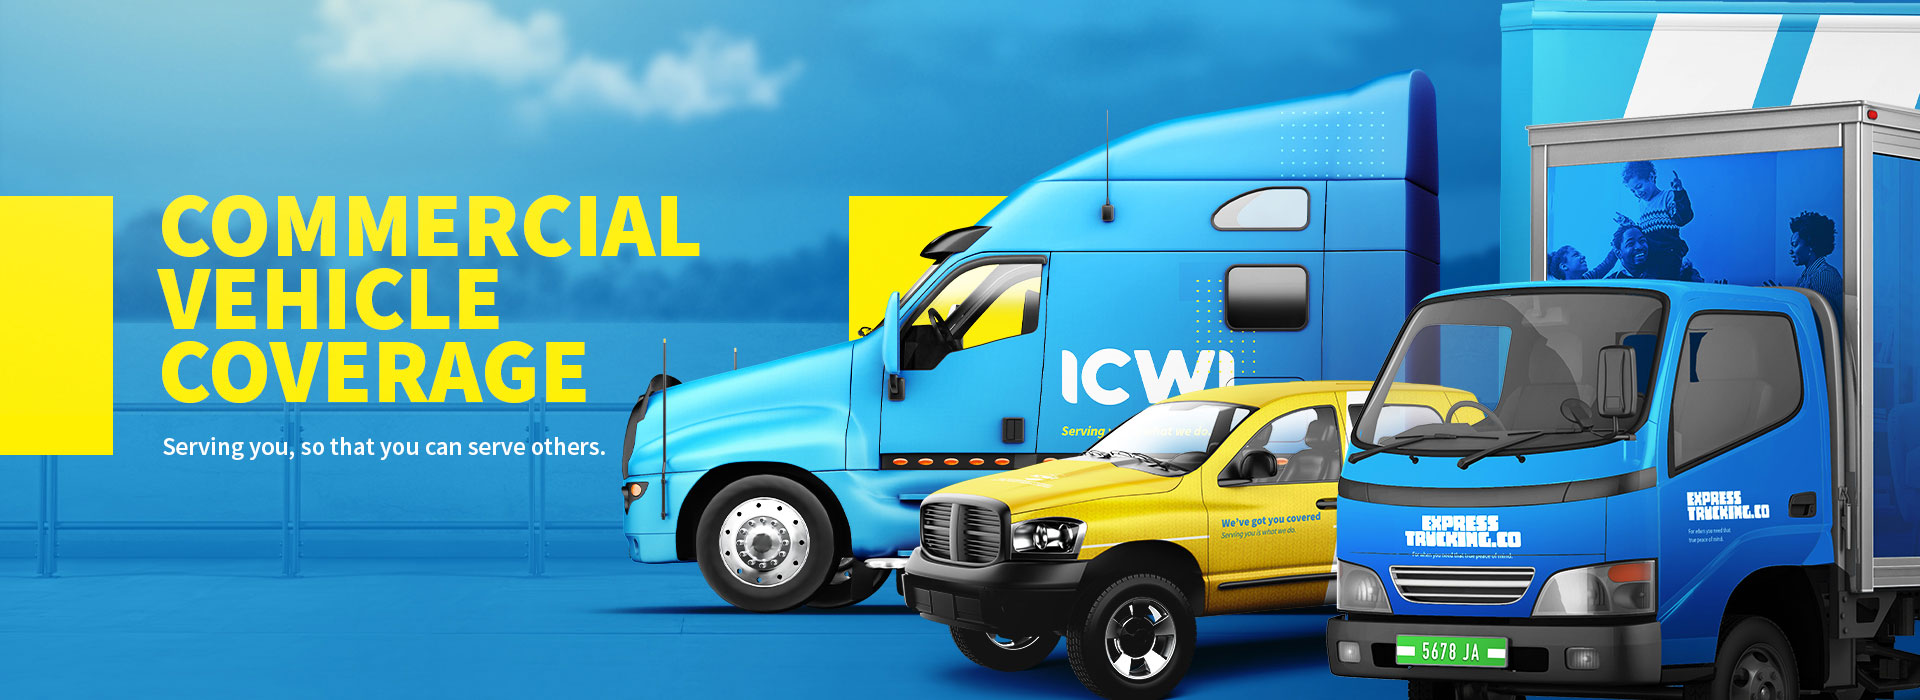 Commercial | Insurance Company of The West Indies Jamaica